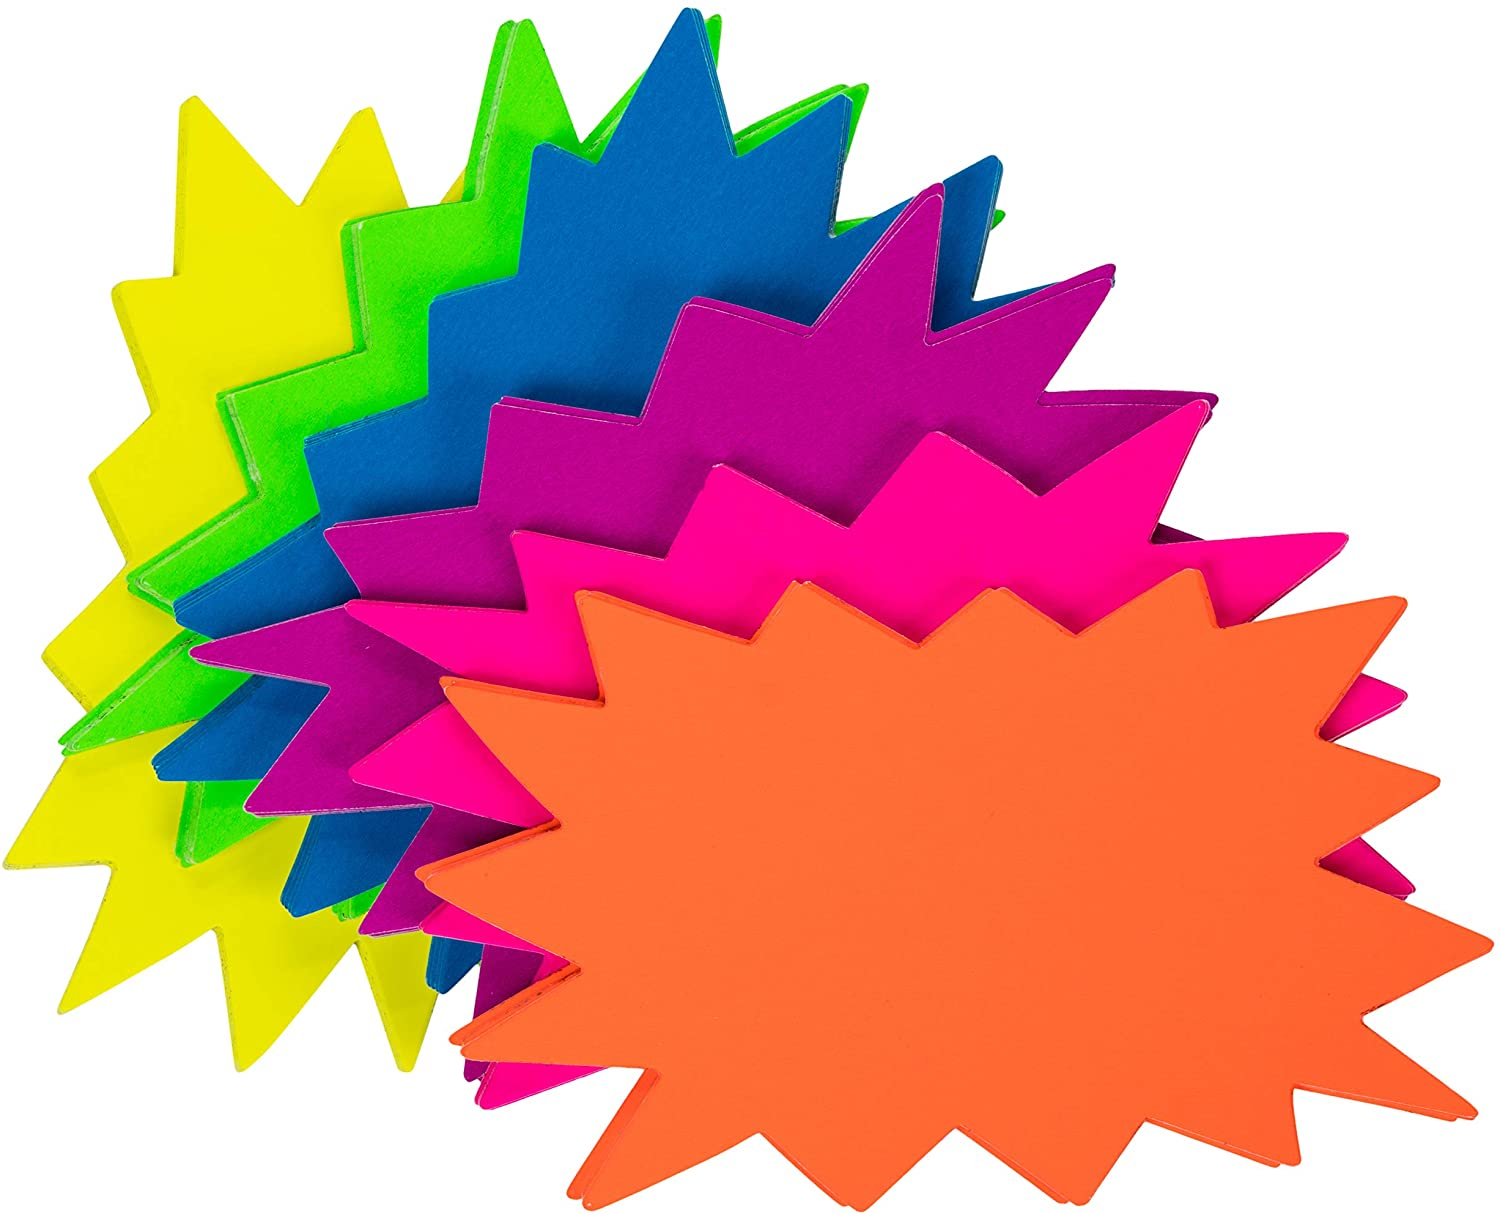 Juvale Starburst Signs - 60-Pack Star Burst Signs for Retail, Fluorescent Neon Paper, 6 Assorted Bright Color Display Tags to Boost Sales, 3 x 5 Inches